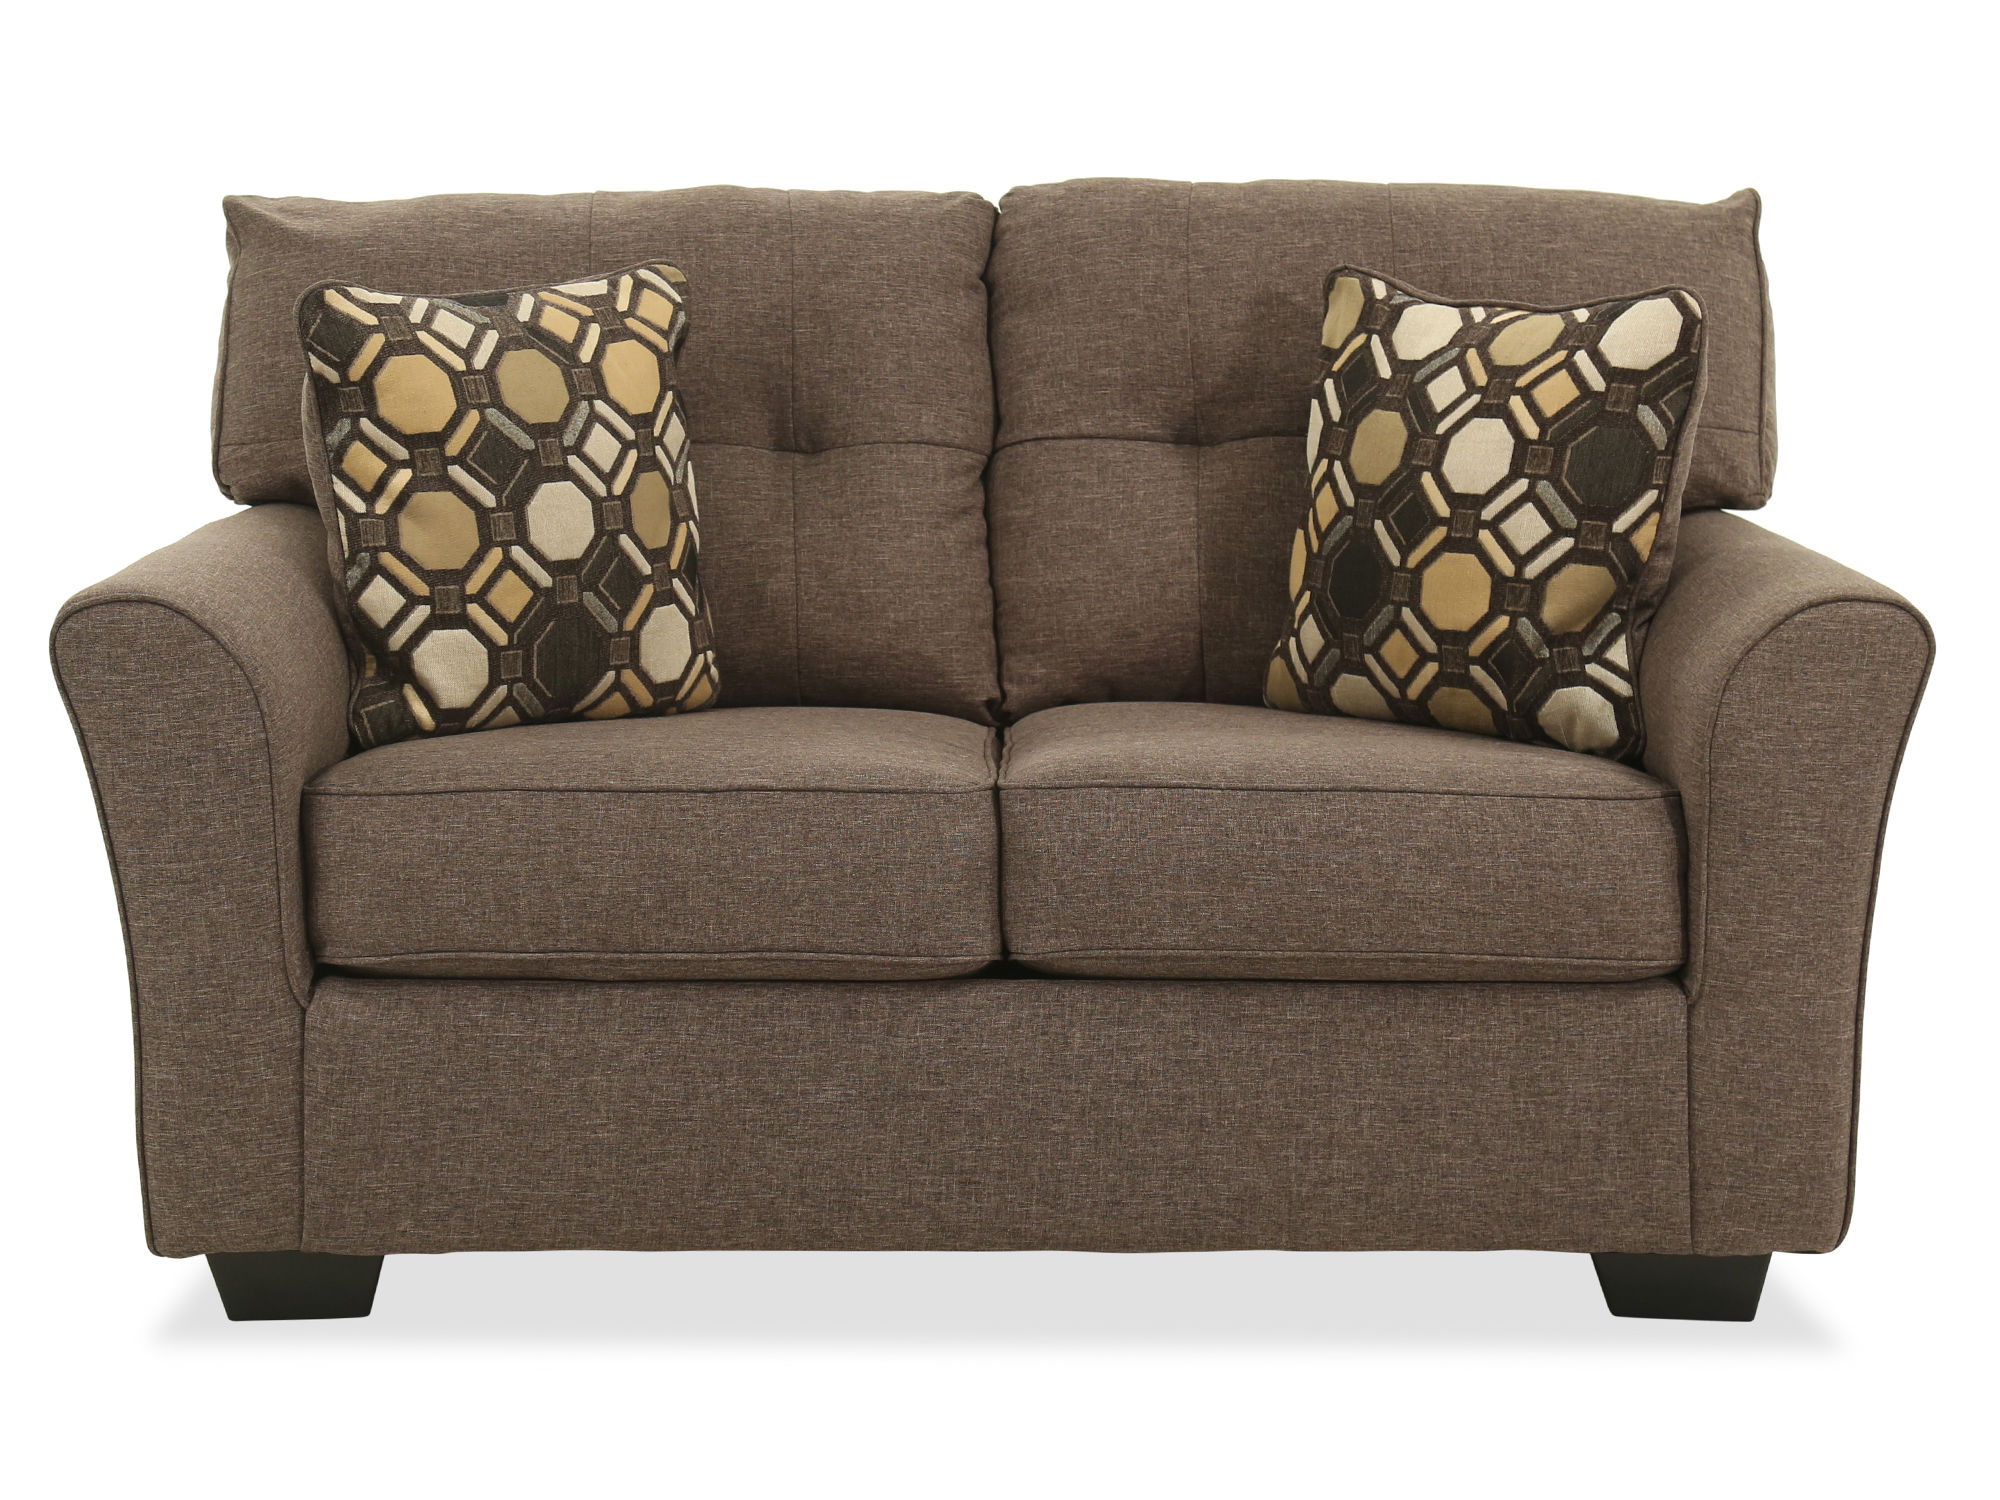 Loveseats - Loveseat Recliners | Mathis Brothers